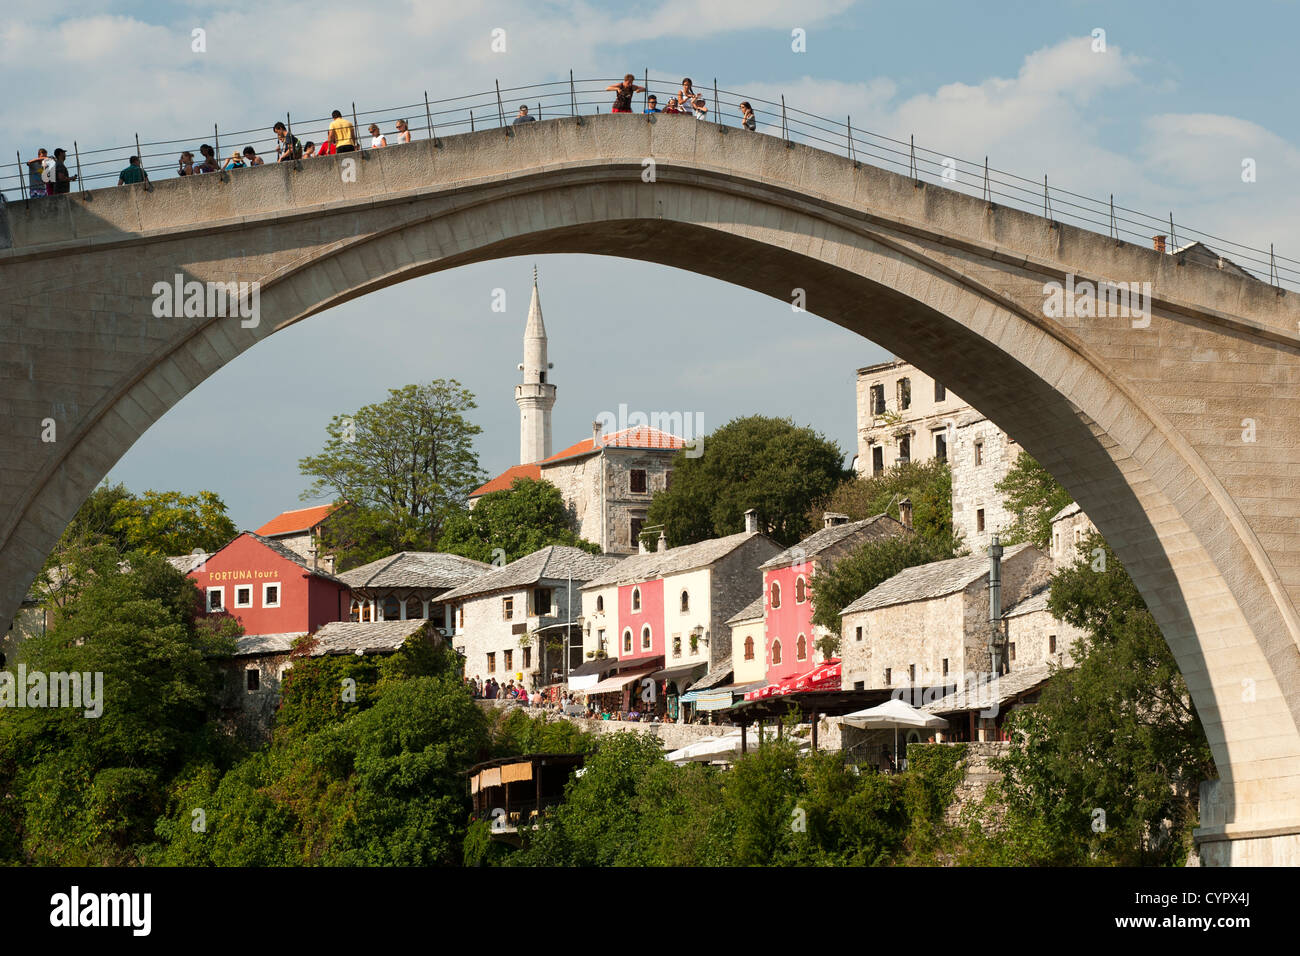 The Stari Most 'Old Bridge' in Mostar in Bosnia Herzegovina. - Stock Image